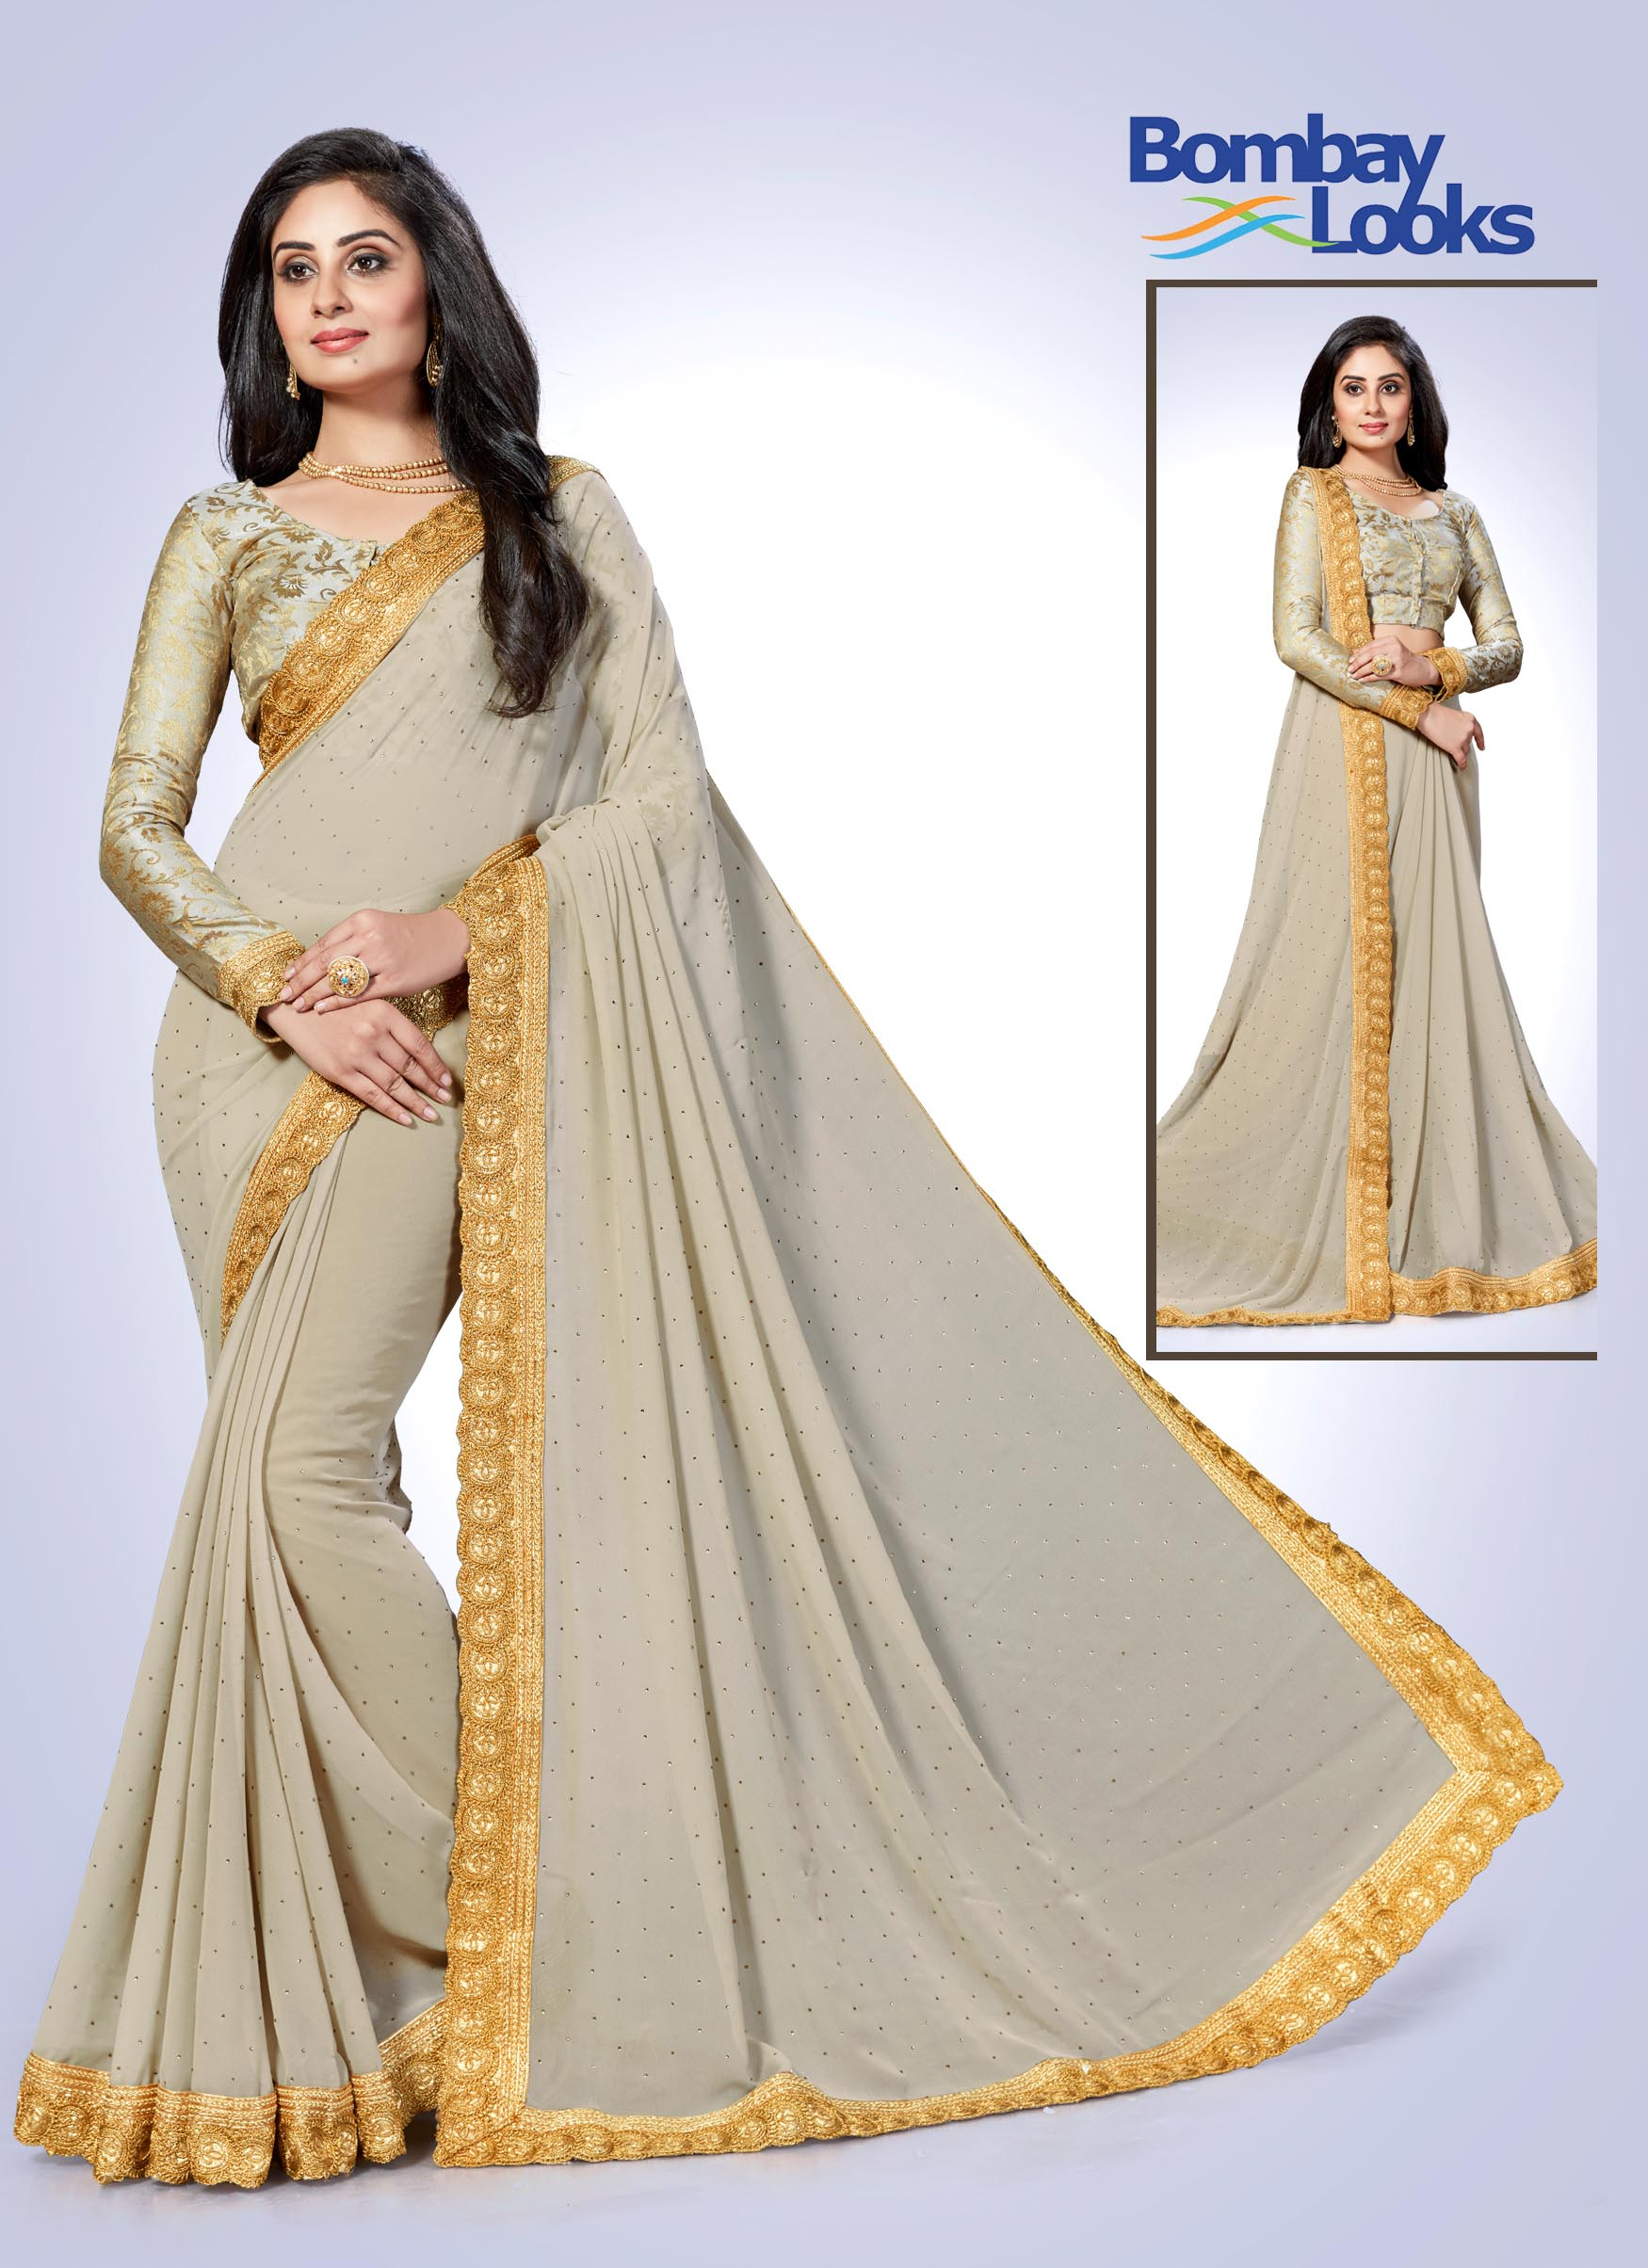 Light grey chiffon saree with gold border